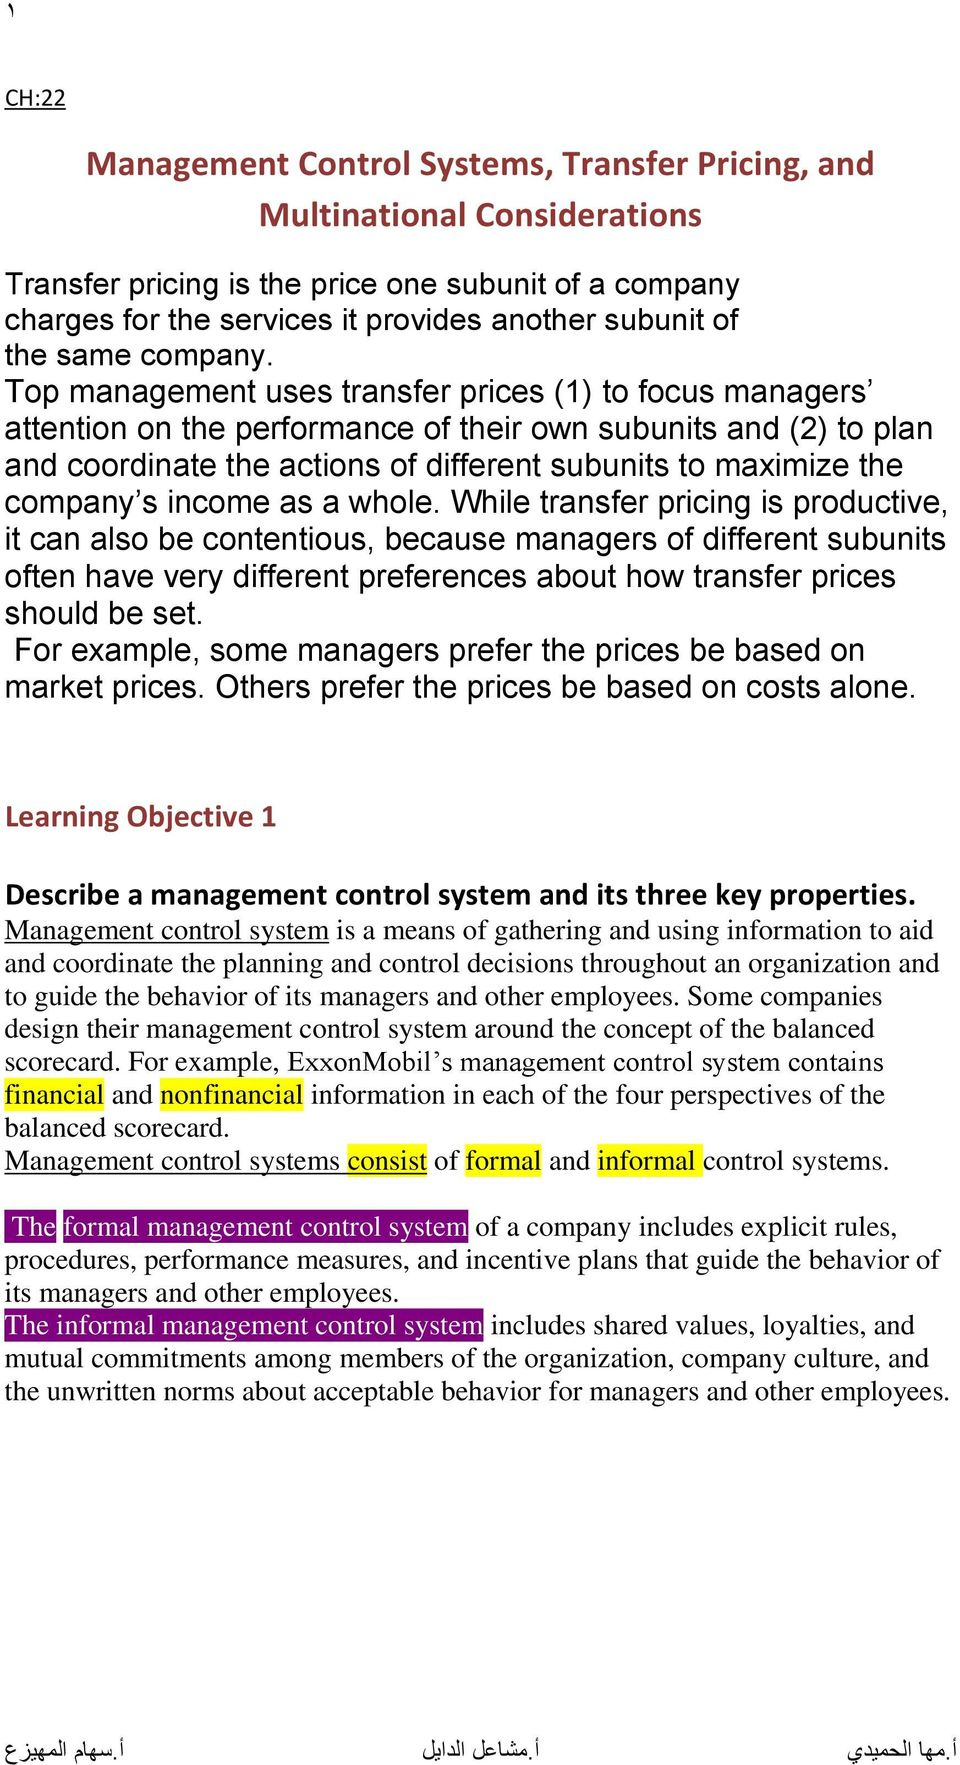 Top management uses transfer prices (1) to focus managers attention on the performance of their own subunits and (2) to plan and coordinate the actions of different subunits to maximize the company s